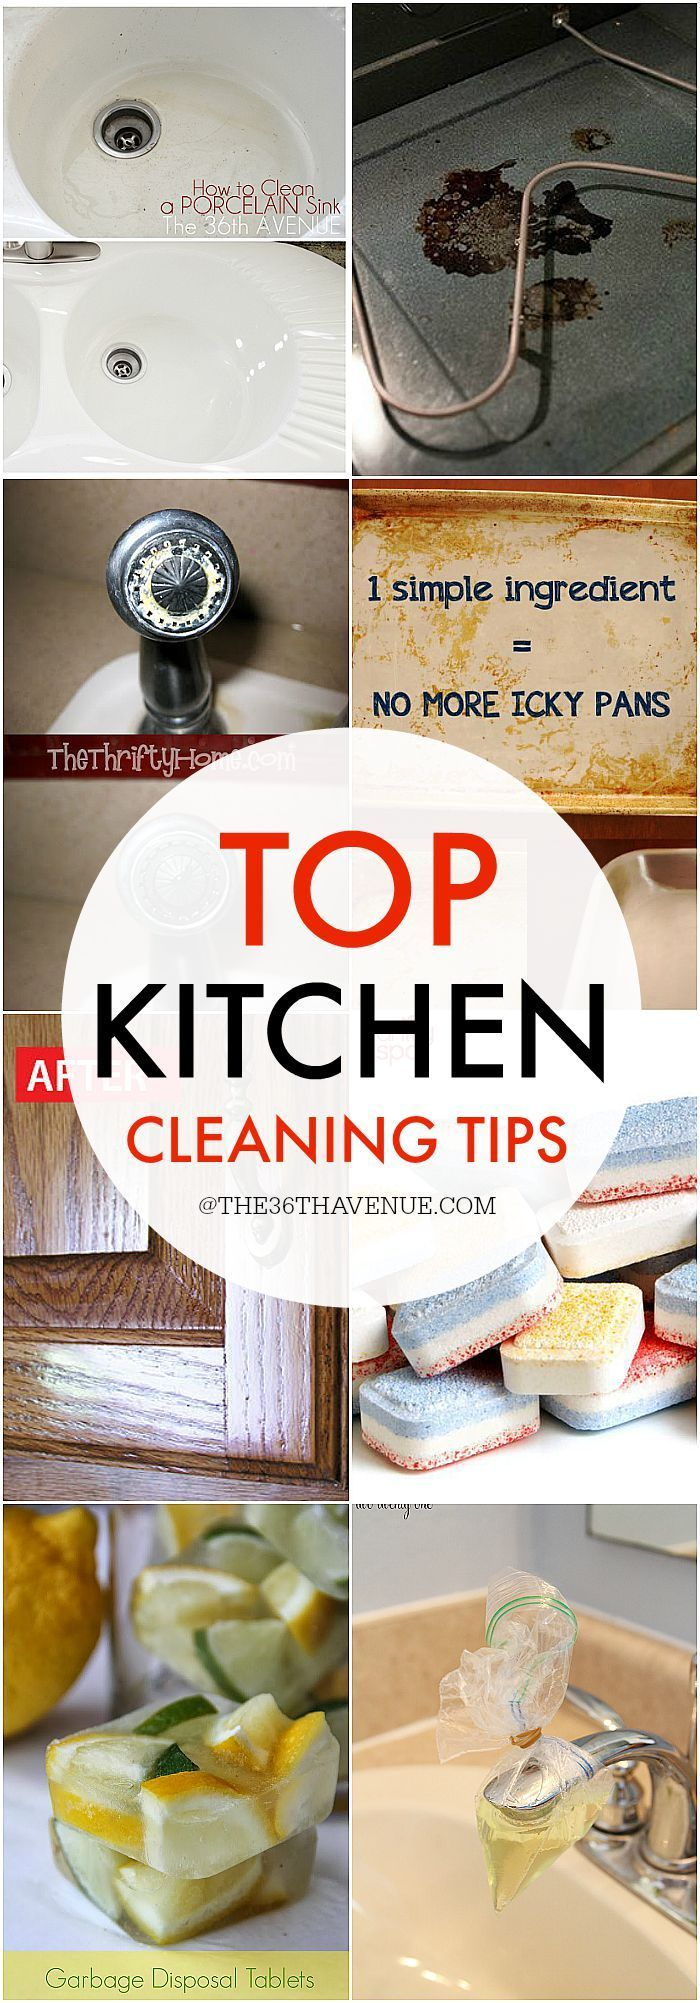 best handy tips images on pinterest cooking recipes clean